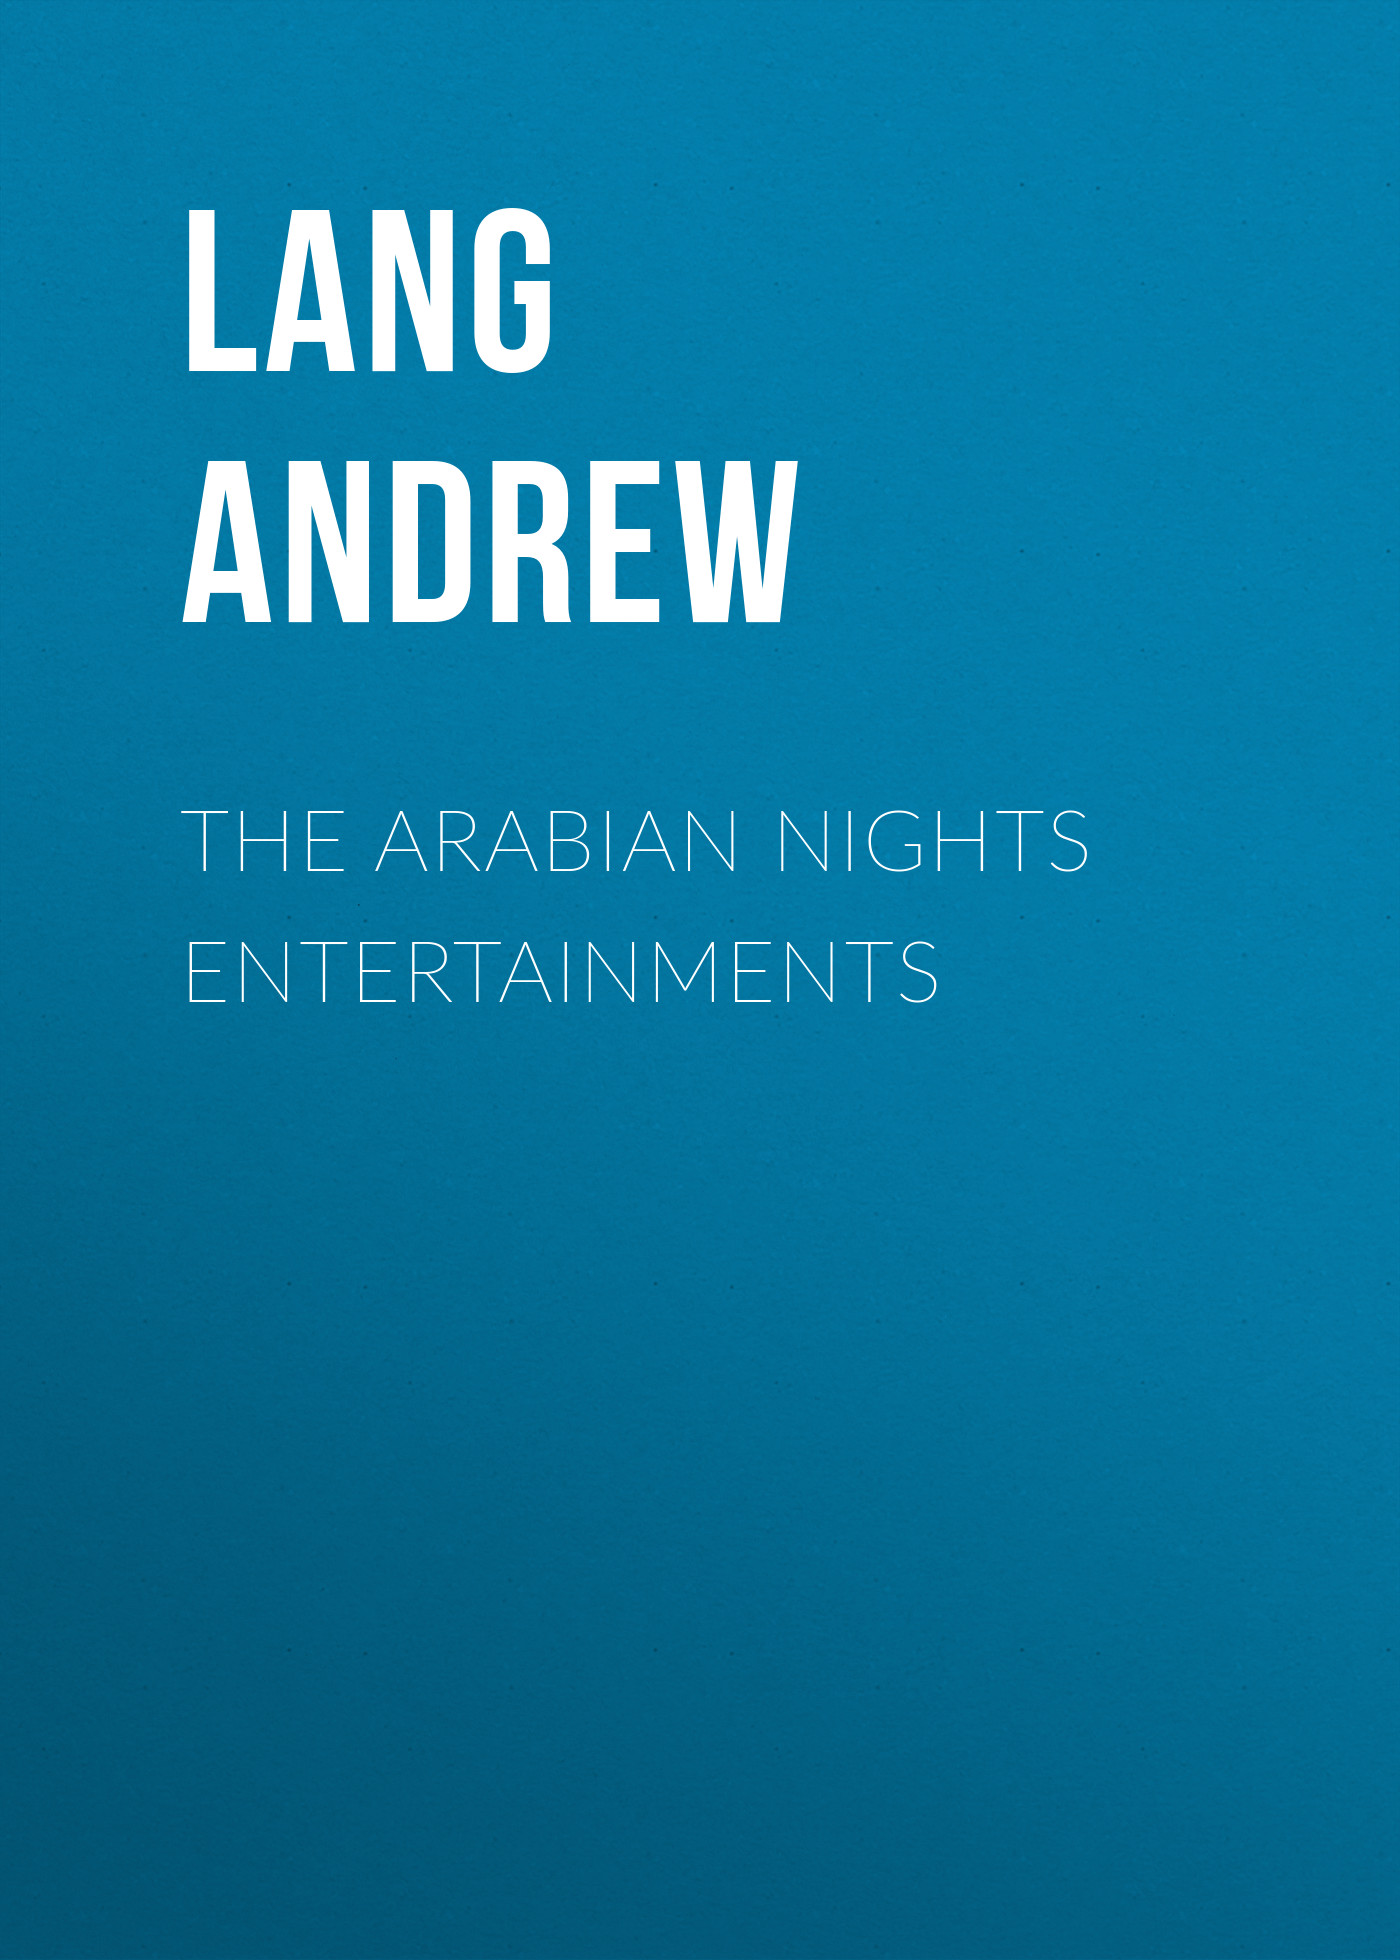 Lang Andrew The Arabian Nights Entertainments неизвестный автор the arabian nights their best known tales